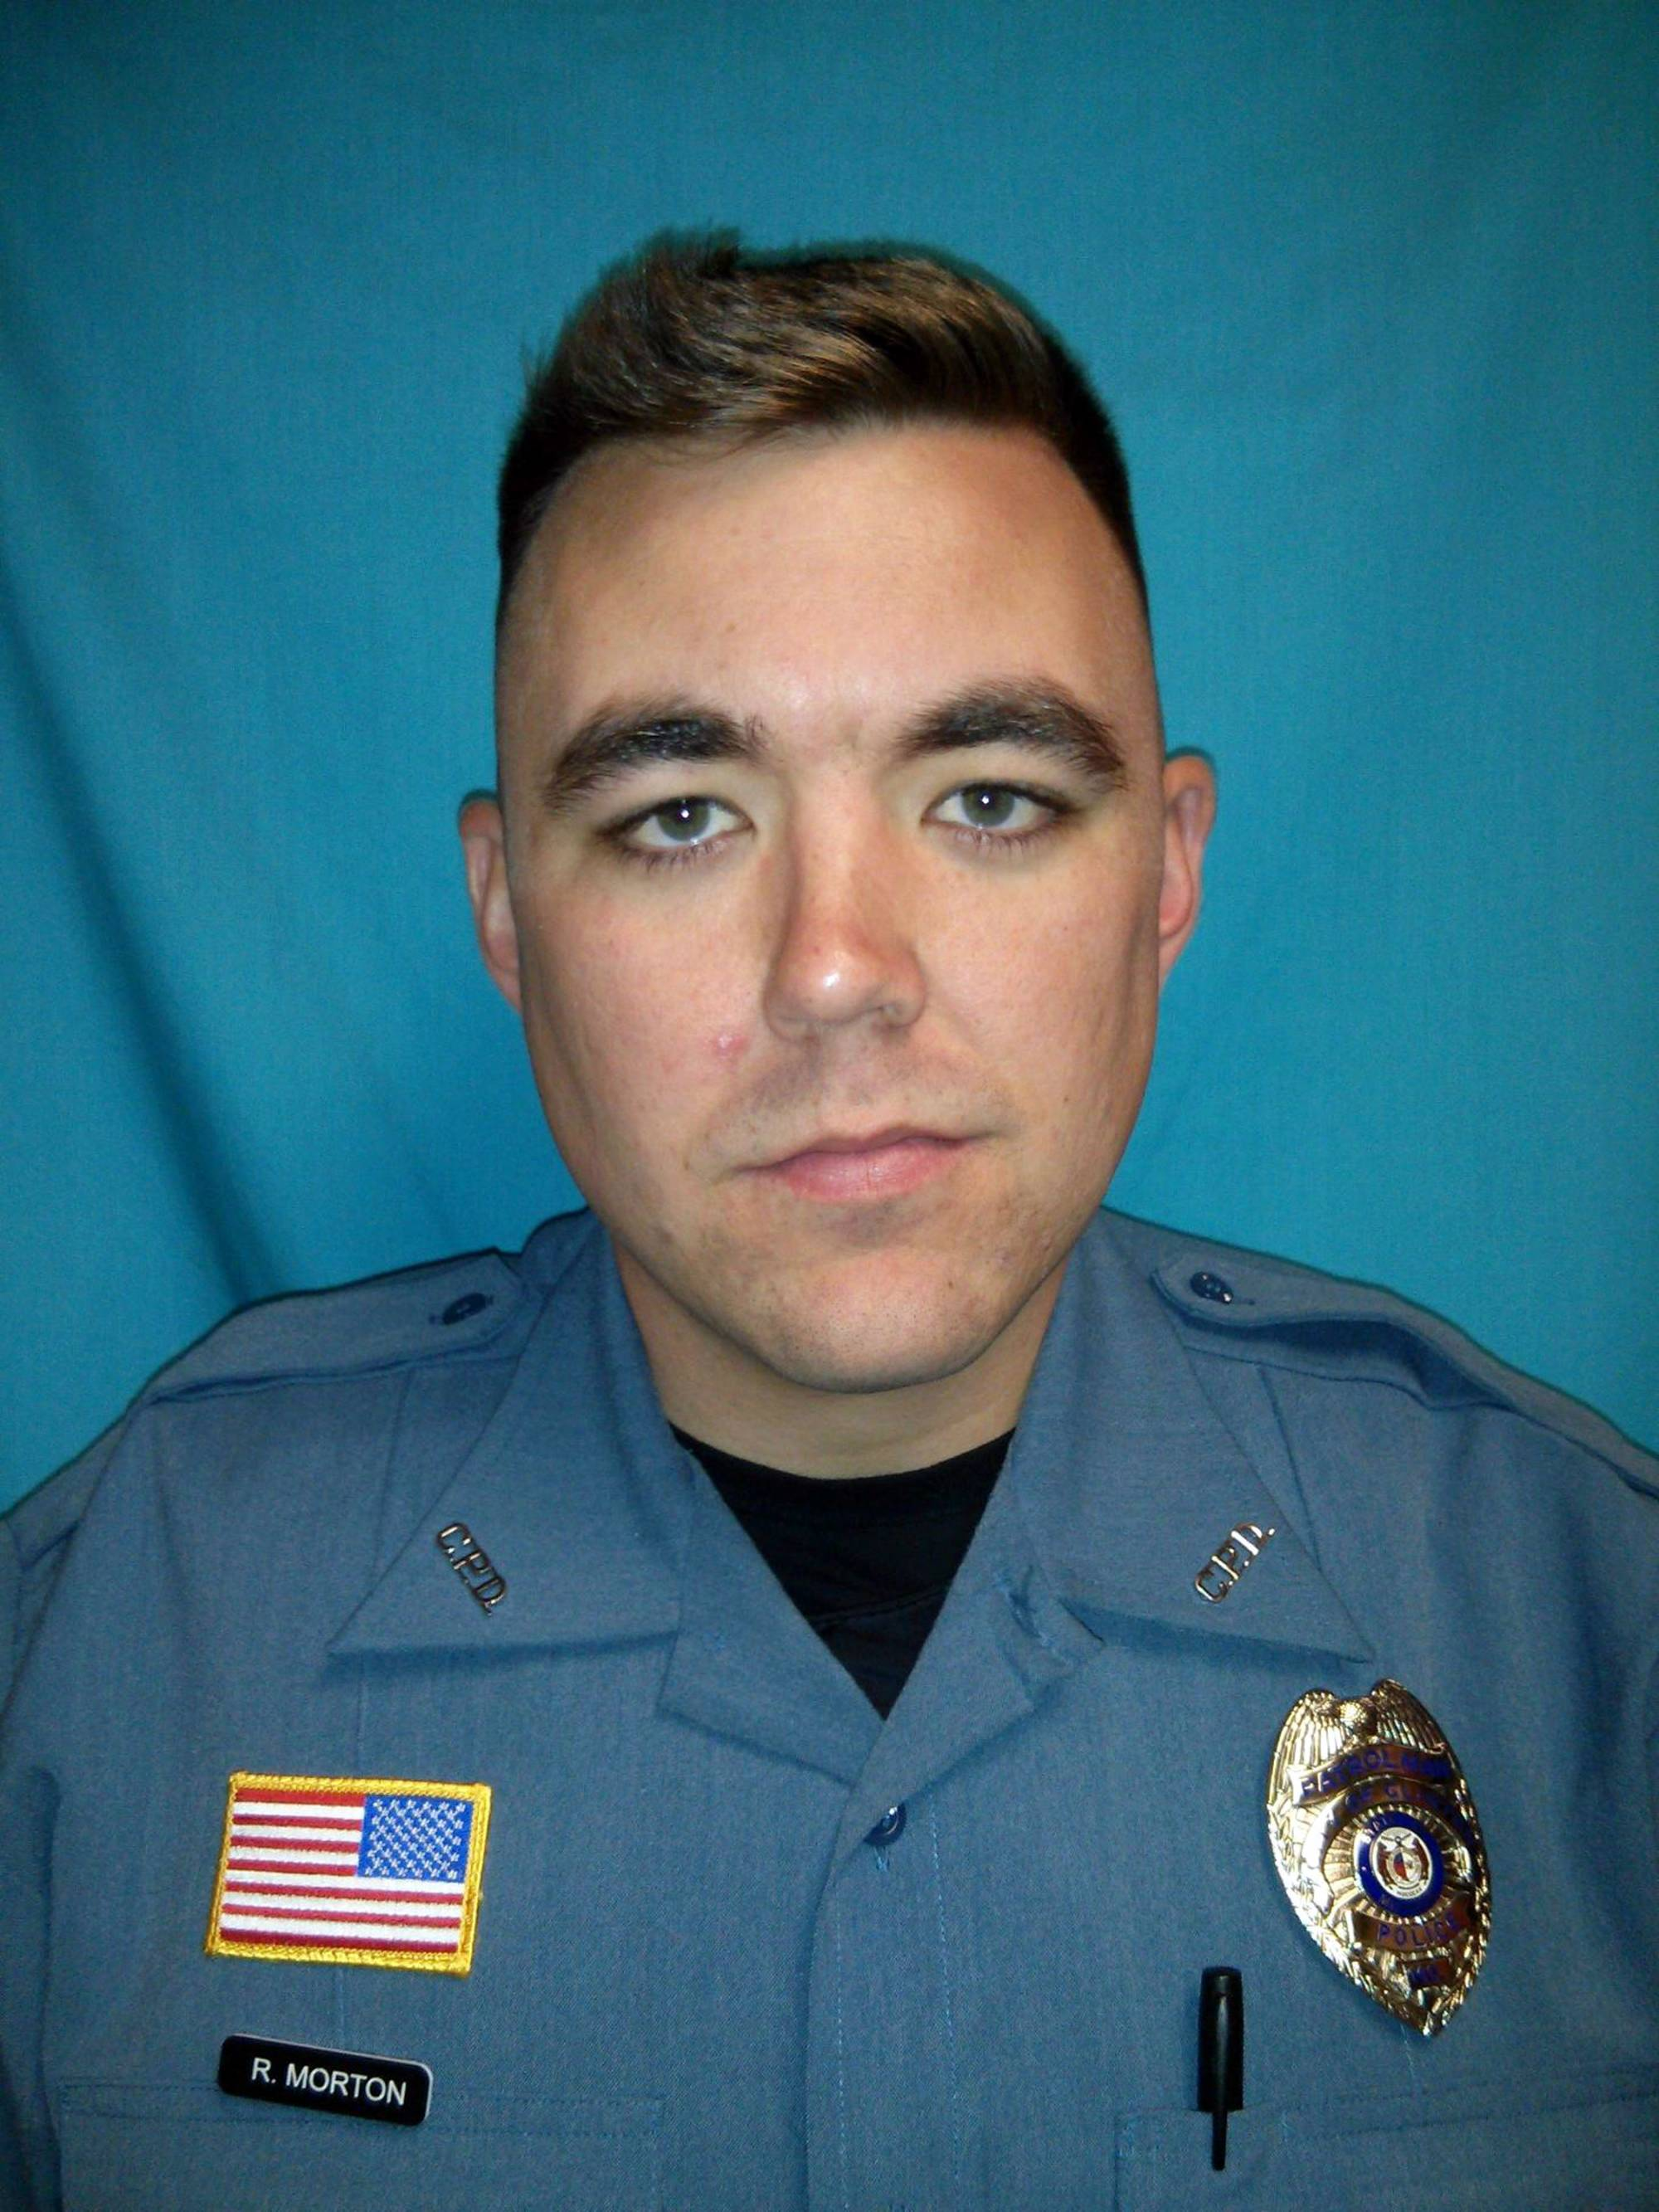 Missouri officer killed, 2 wounded responding to 911 call